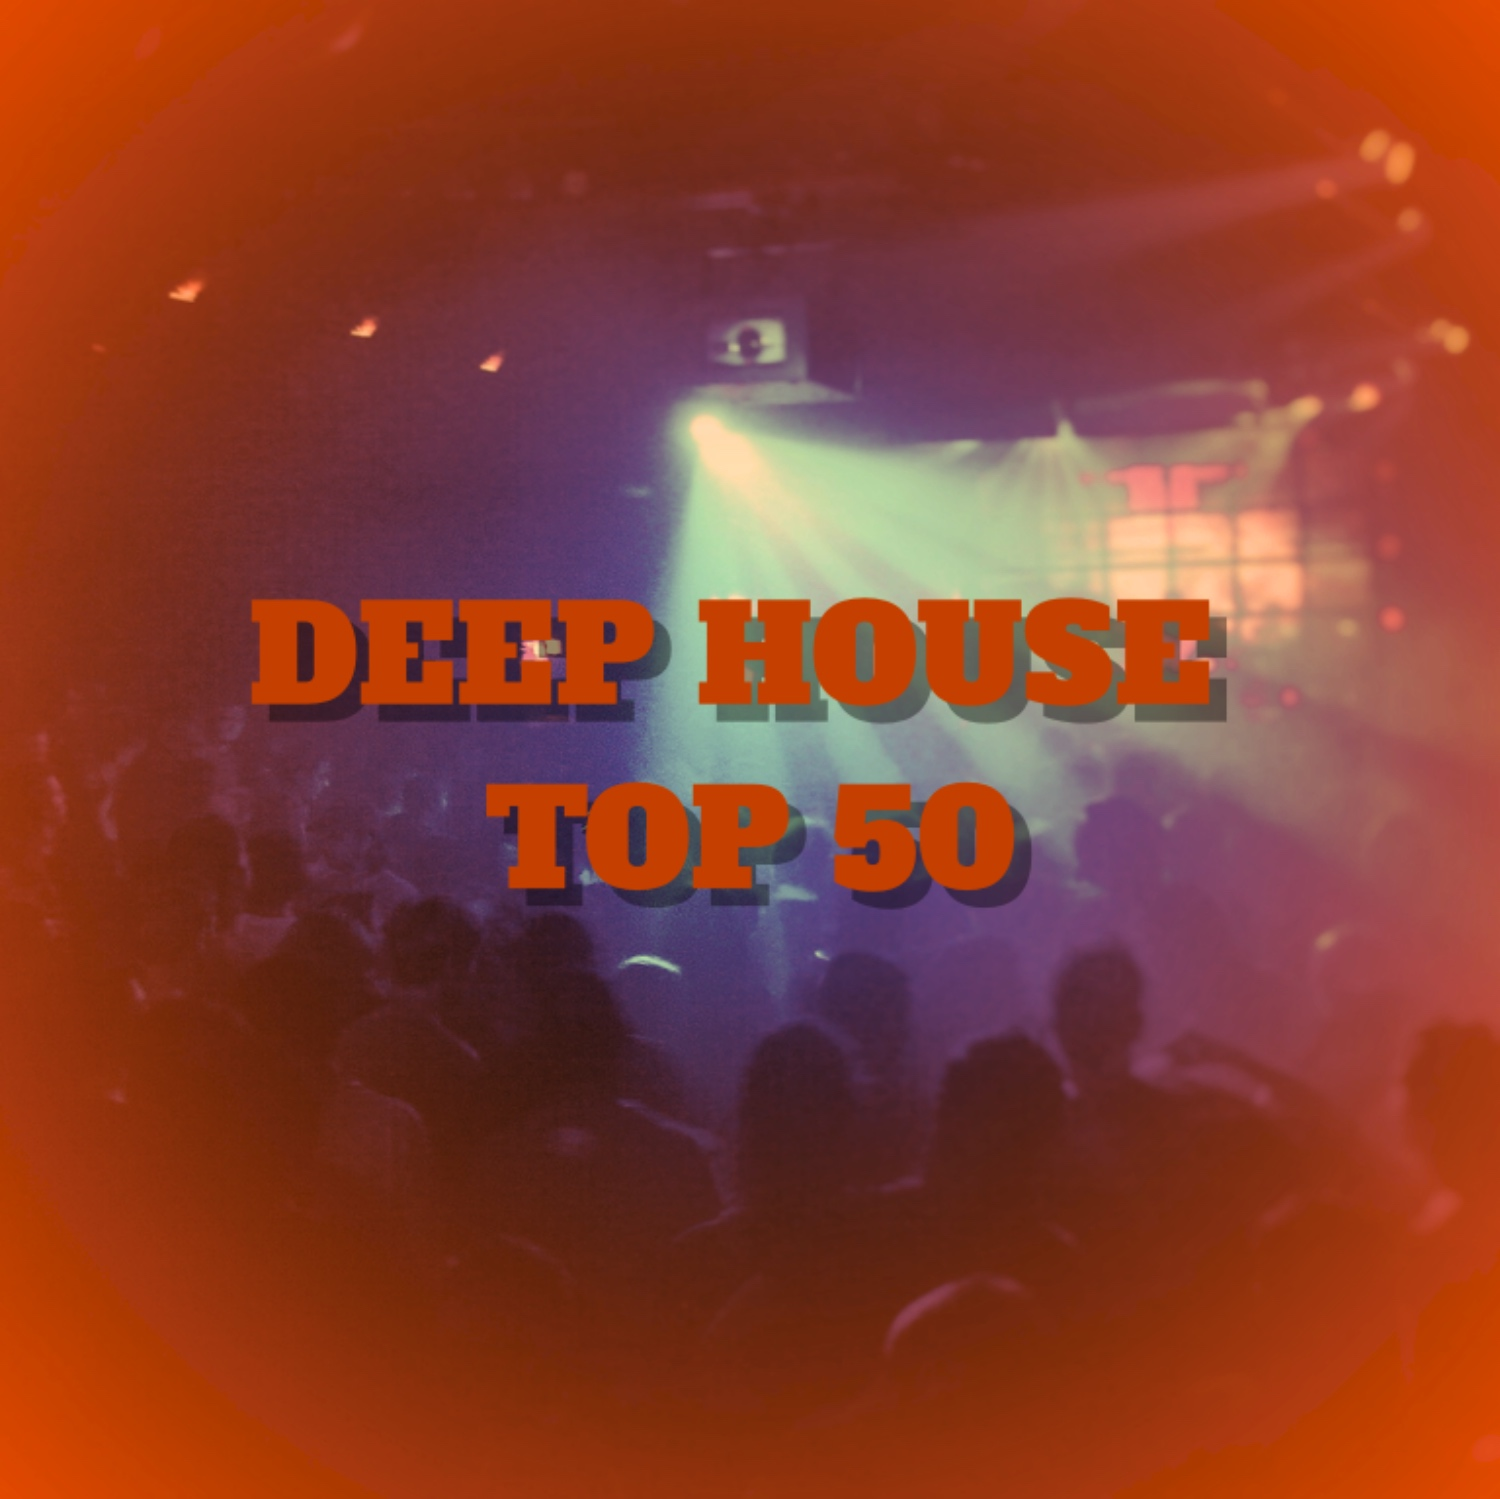 My Deep House Top 50